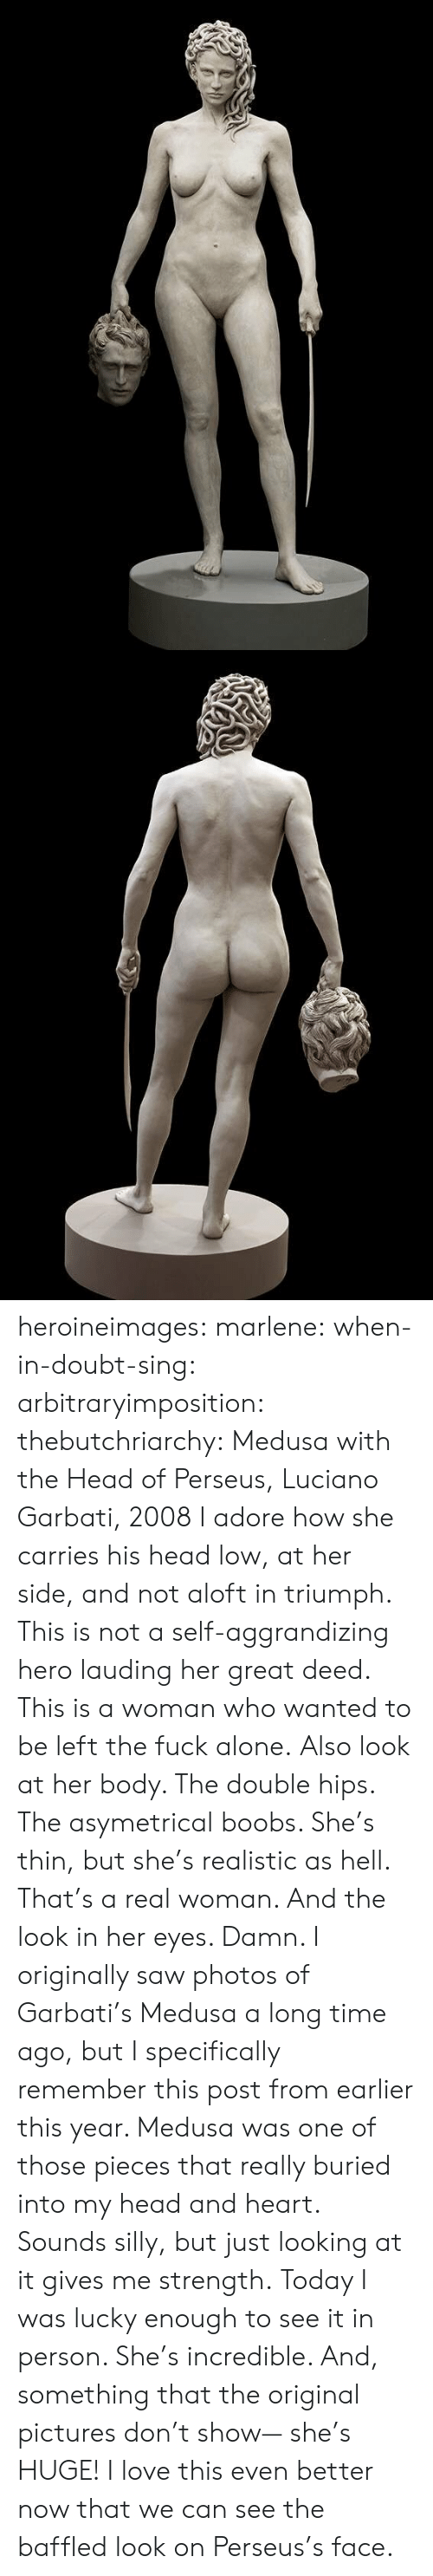 But She: heroineimages:  marlene:  when-in-doubt-sing:  arbitraryimposition:  thebutchriarchy: Medusa with the Head of Perseus, Luciano Garbati, 2008 I adore how she carries his head low, at her side, and not aloft in triumph.  This is not a self-aggrandizing hero lauding her great deed. This is a woman who wanted to be left the fuck alone.   Also look at her body. The double hips. The asymetrical boobs. She's thin, but she's realistic as hell. That's a real woman.  And the look in her eyes. Damn.   I originally saw photos of Garbati's Medusa a long time ago, but I specifically remember this post from earlier this year. Medusa was one of those pieces that really buried into my head and heart. Sounds silly, but just looking at it gives me strength. Today I was lucky enough to see it in person. She's incredible. And, something that the original pictures don't show— she's HUGE!    I love this even better now that we can see the baffled look on Perseus's face.